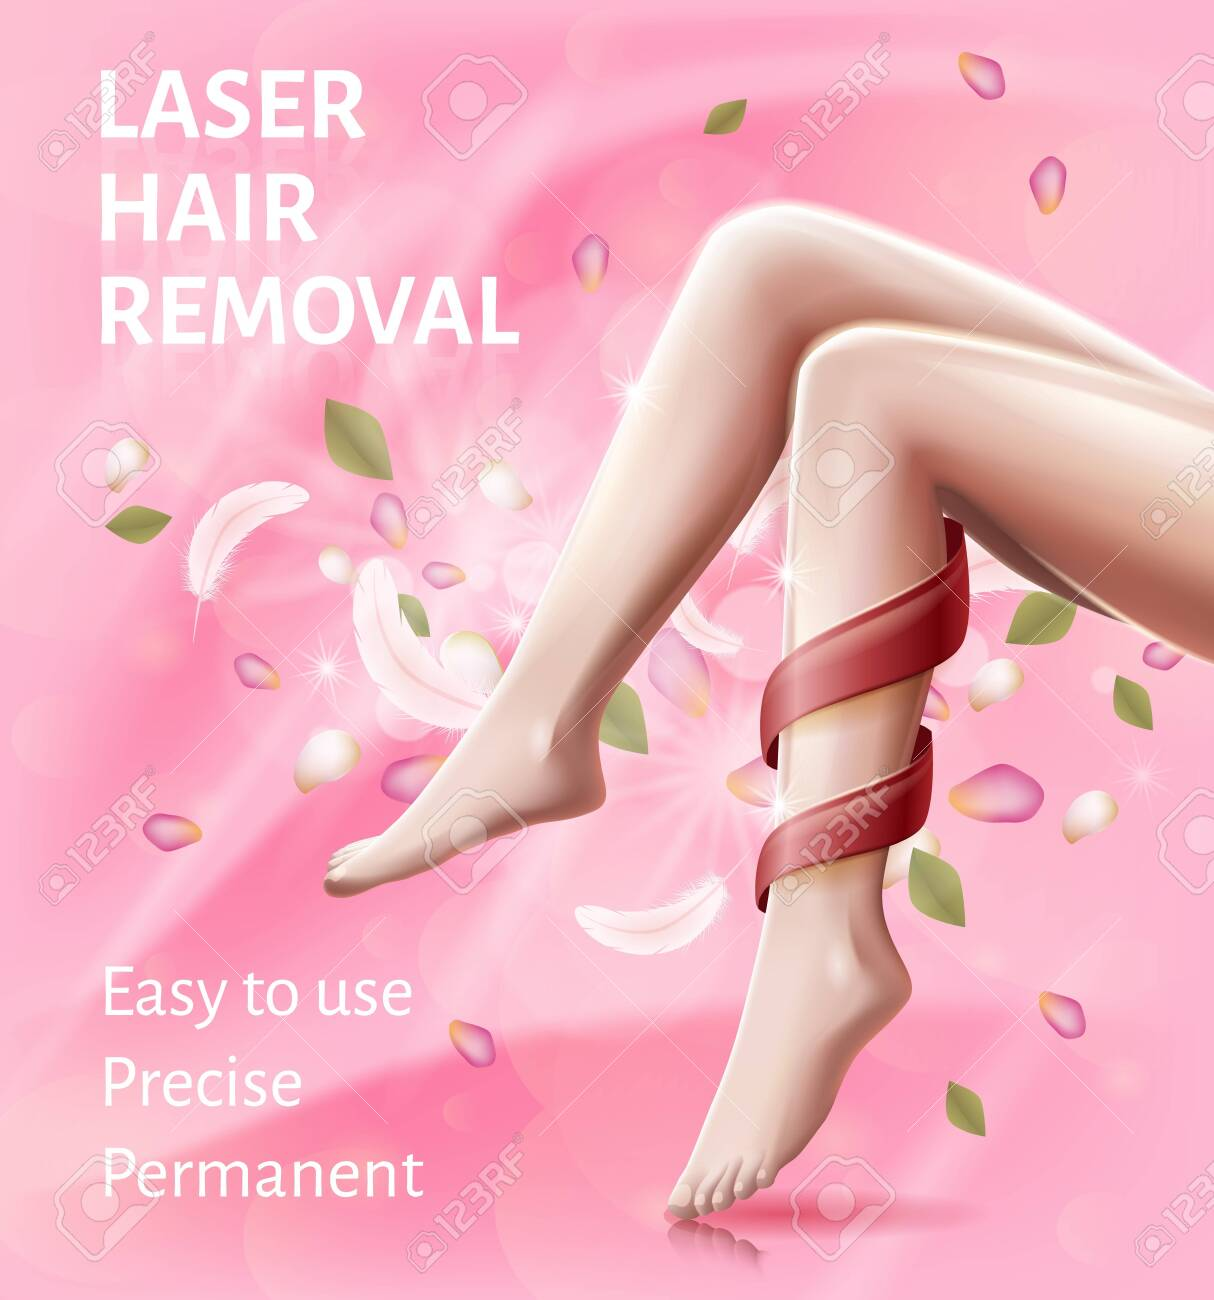 Laser Hair Removal Device Easy To Use Advertising Banner For Royalty Free Cliparts Vectors And Stock Illustration Image 124573974